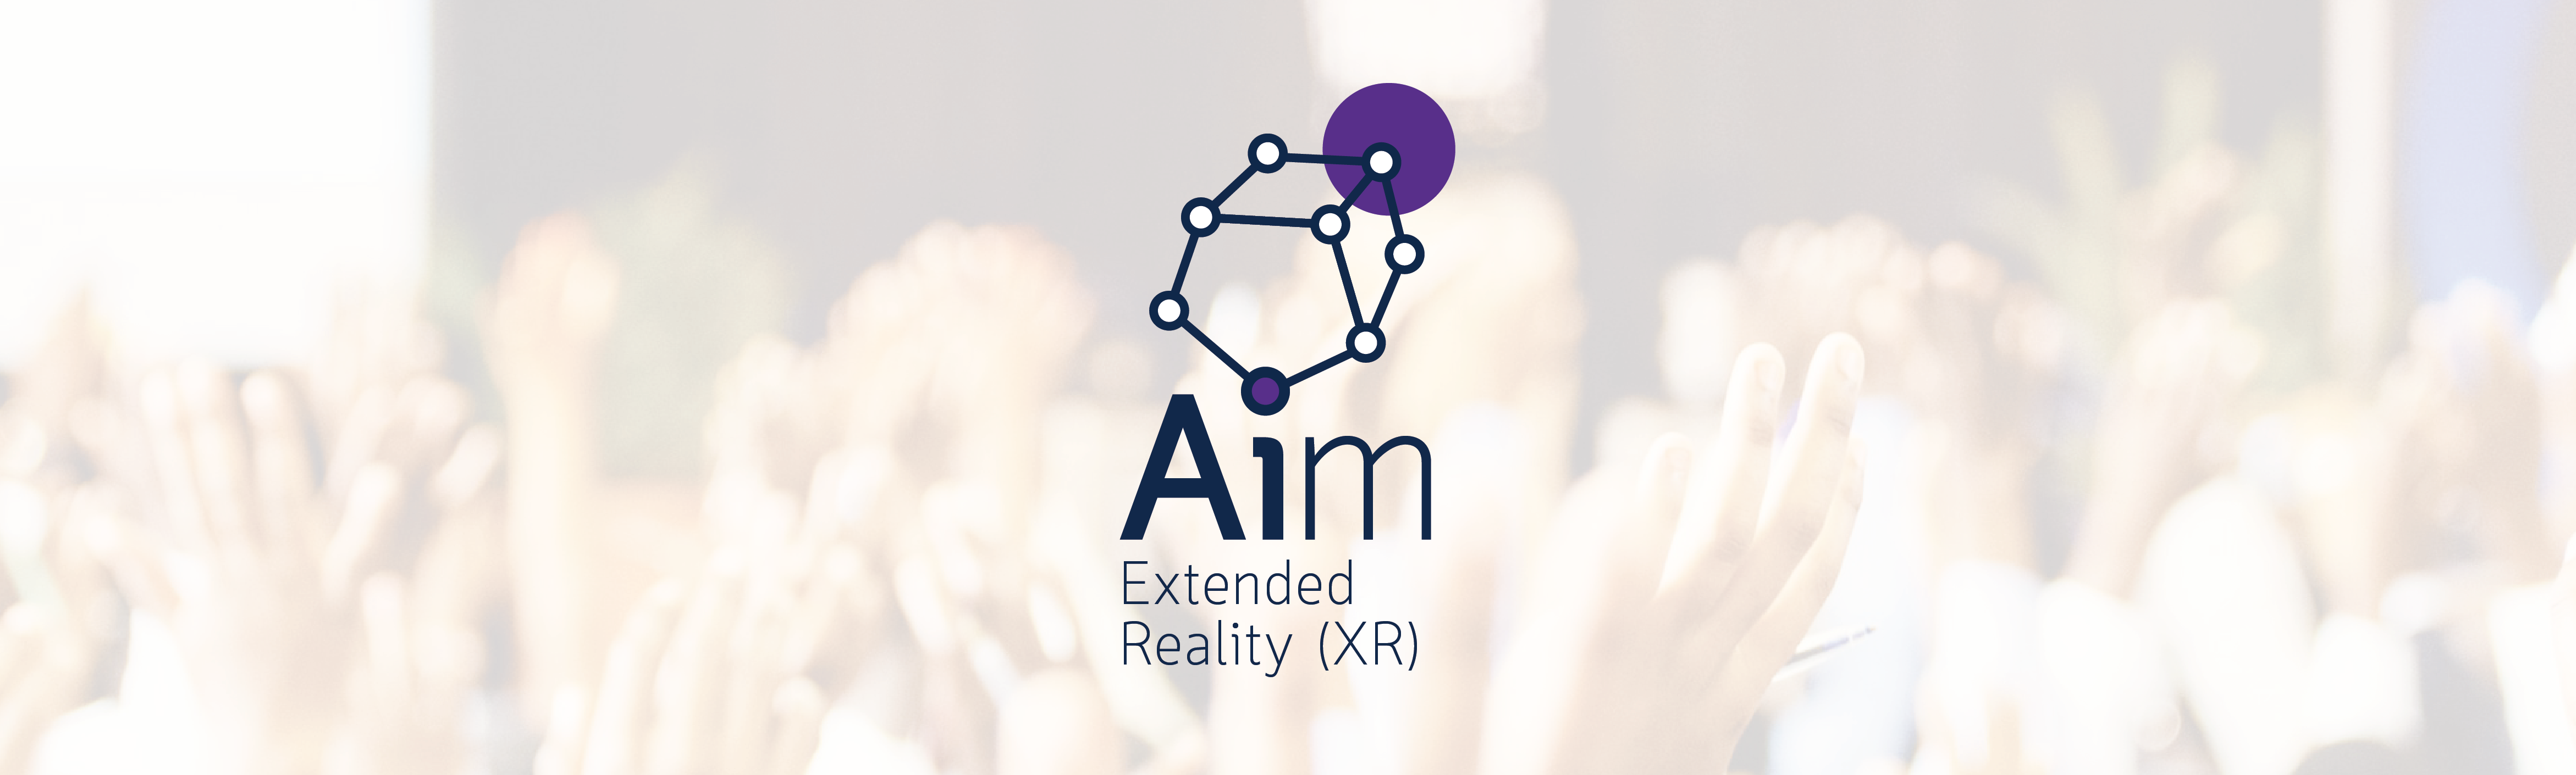 AIM Extended Reality (XR)